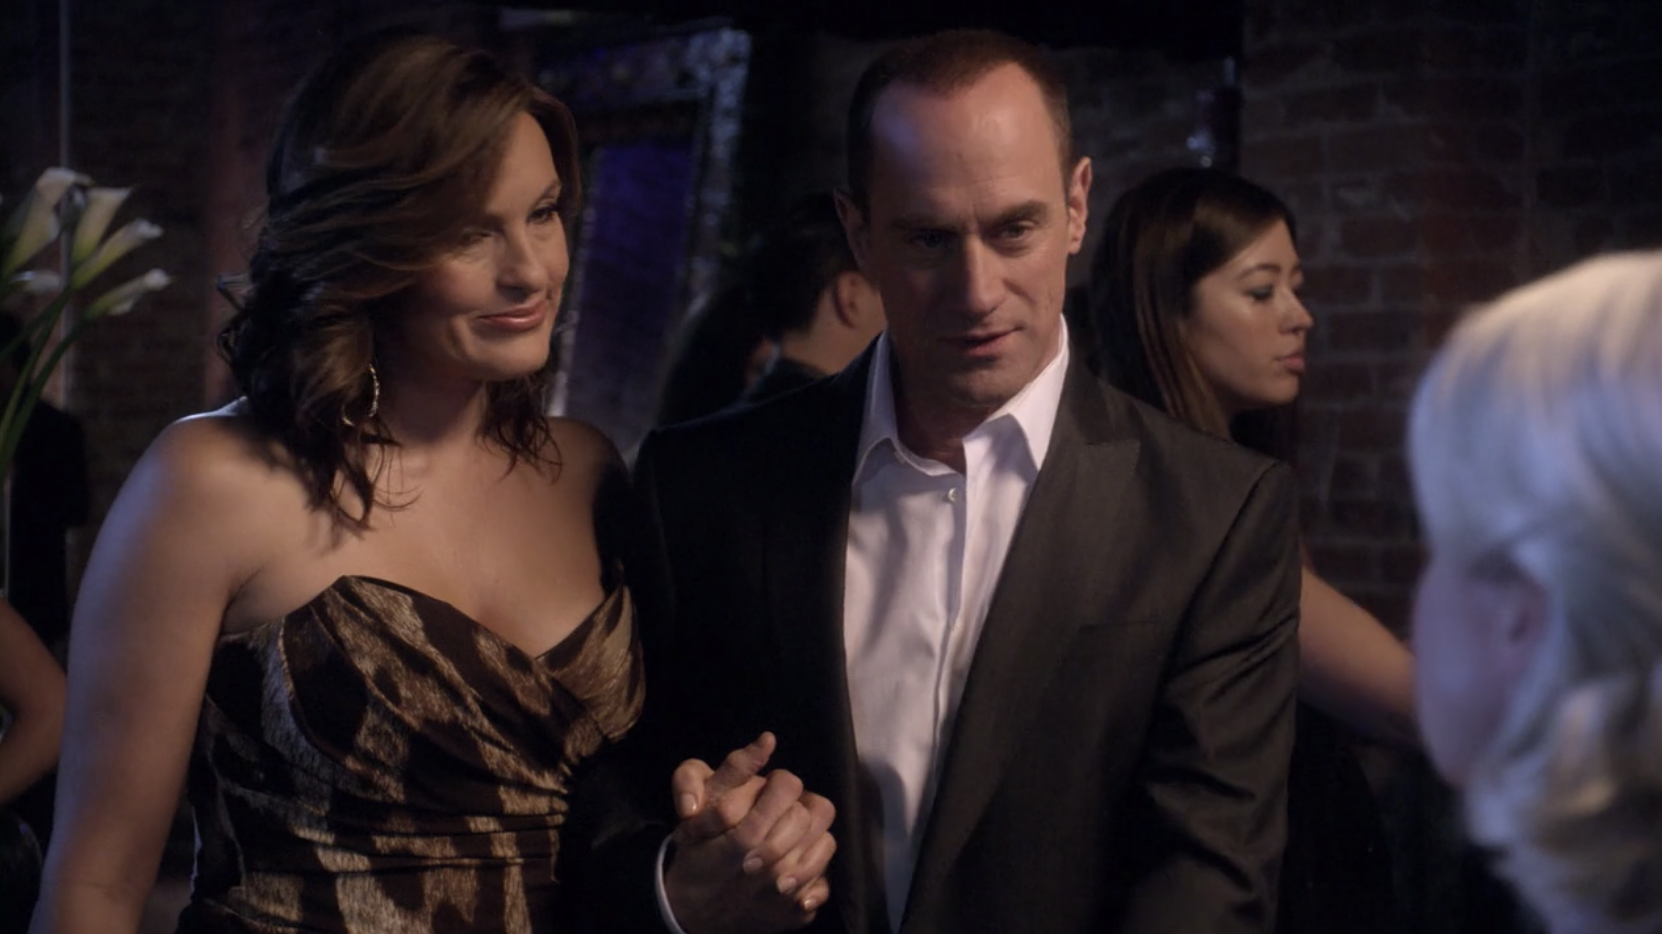 Benson and Stabler pretending to be man and wife